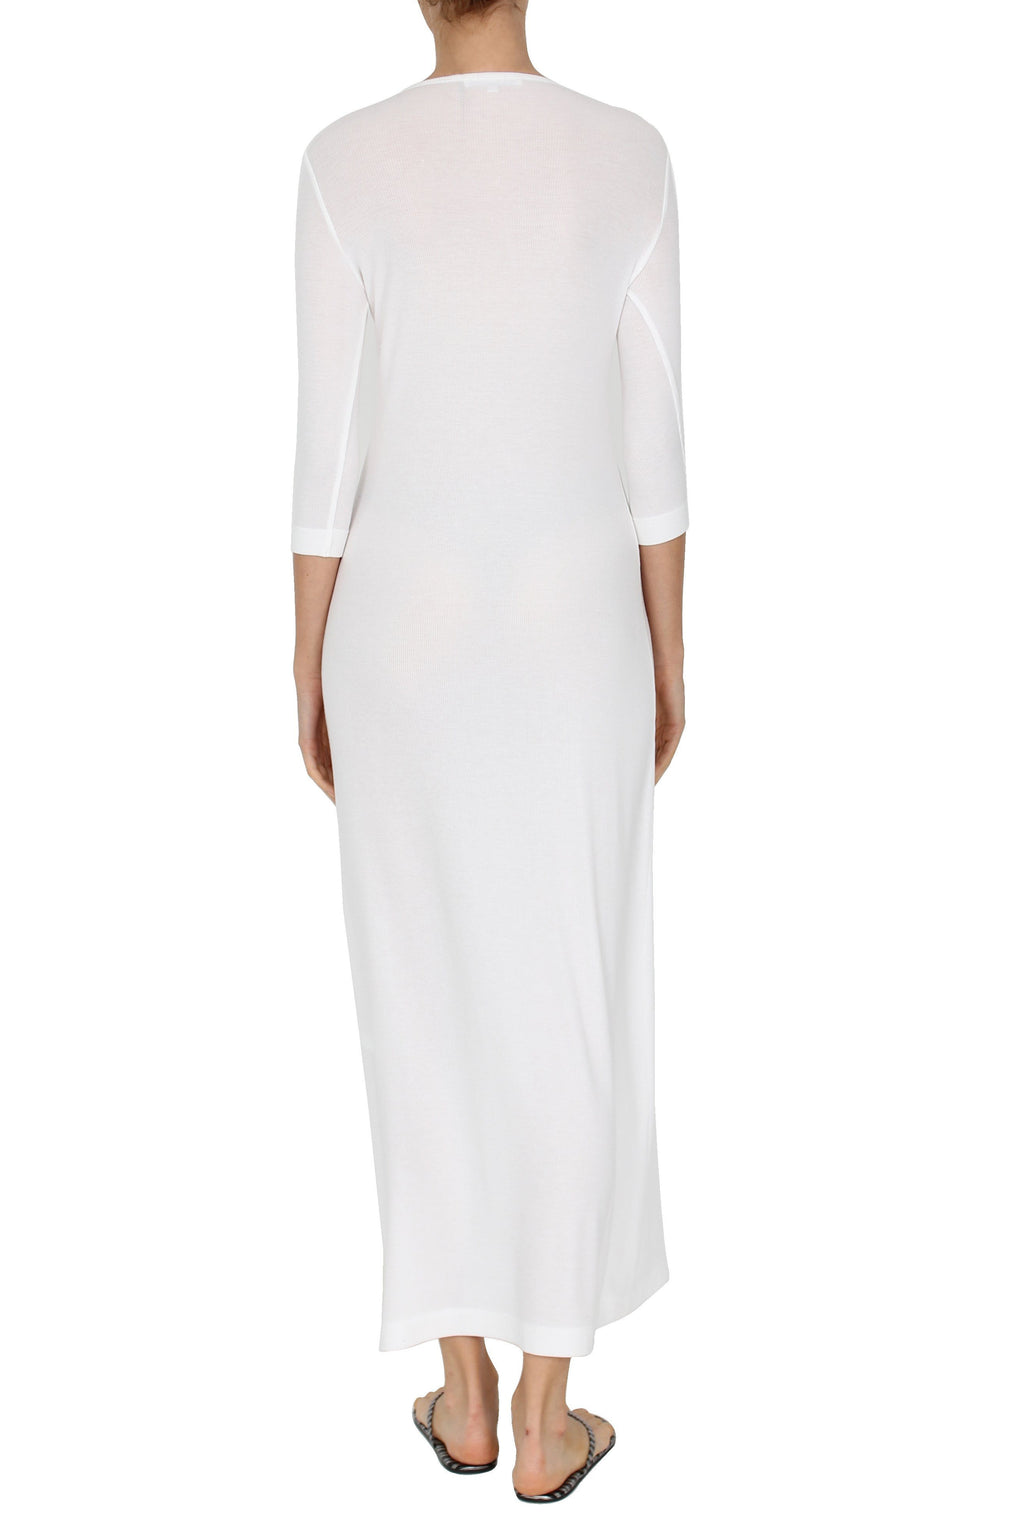 Ribbed Tunisien Dress Marie France Van Damme